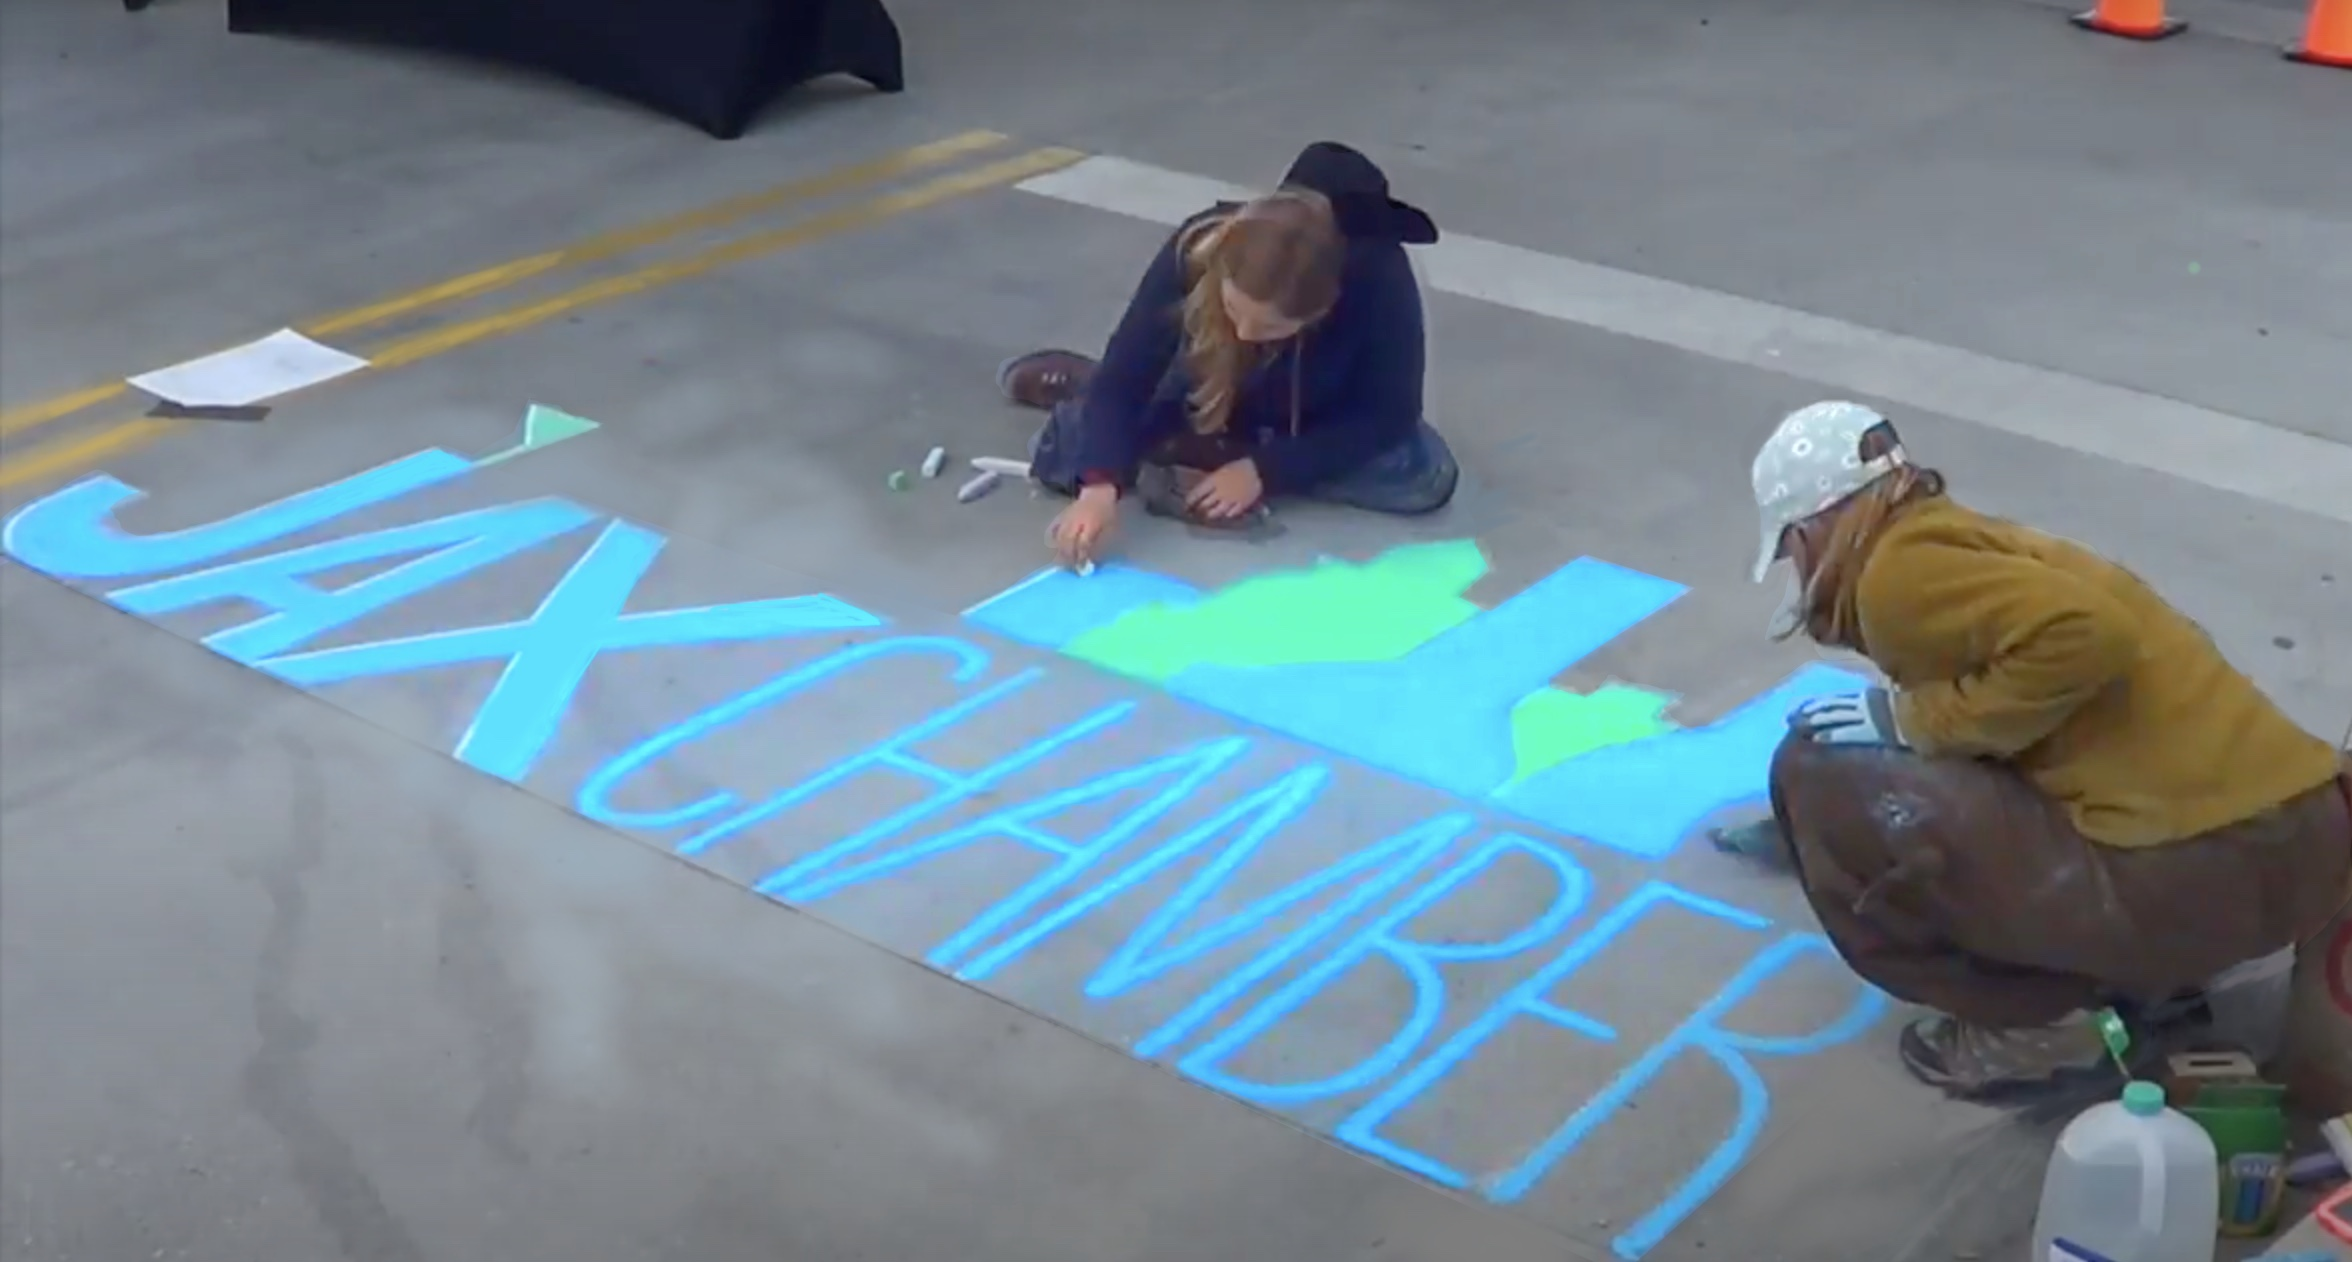 JaxChamber @ Intuition Ale Works - Heartspace art creates chalk mural for 133rd jax chamber gathering - Murals with a Message